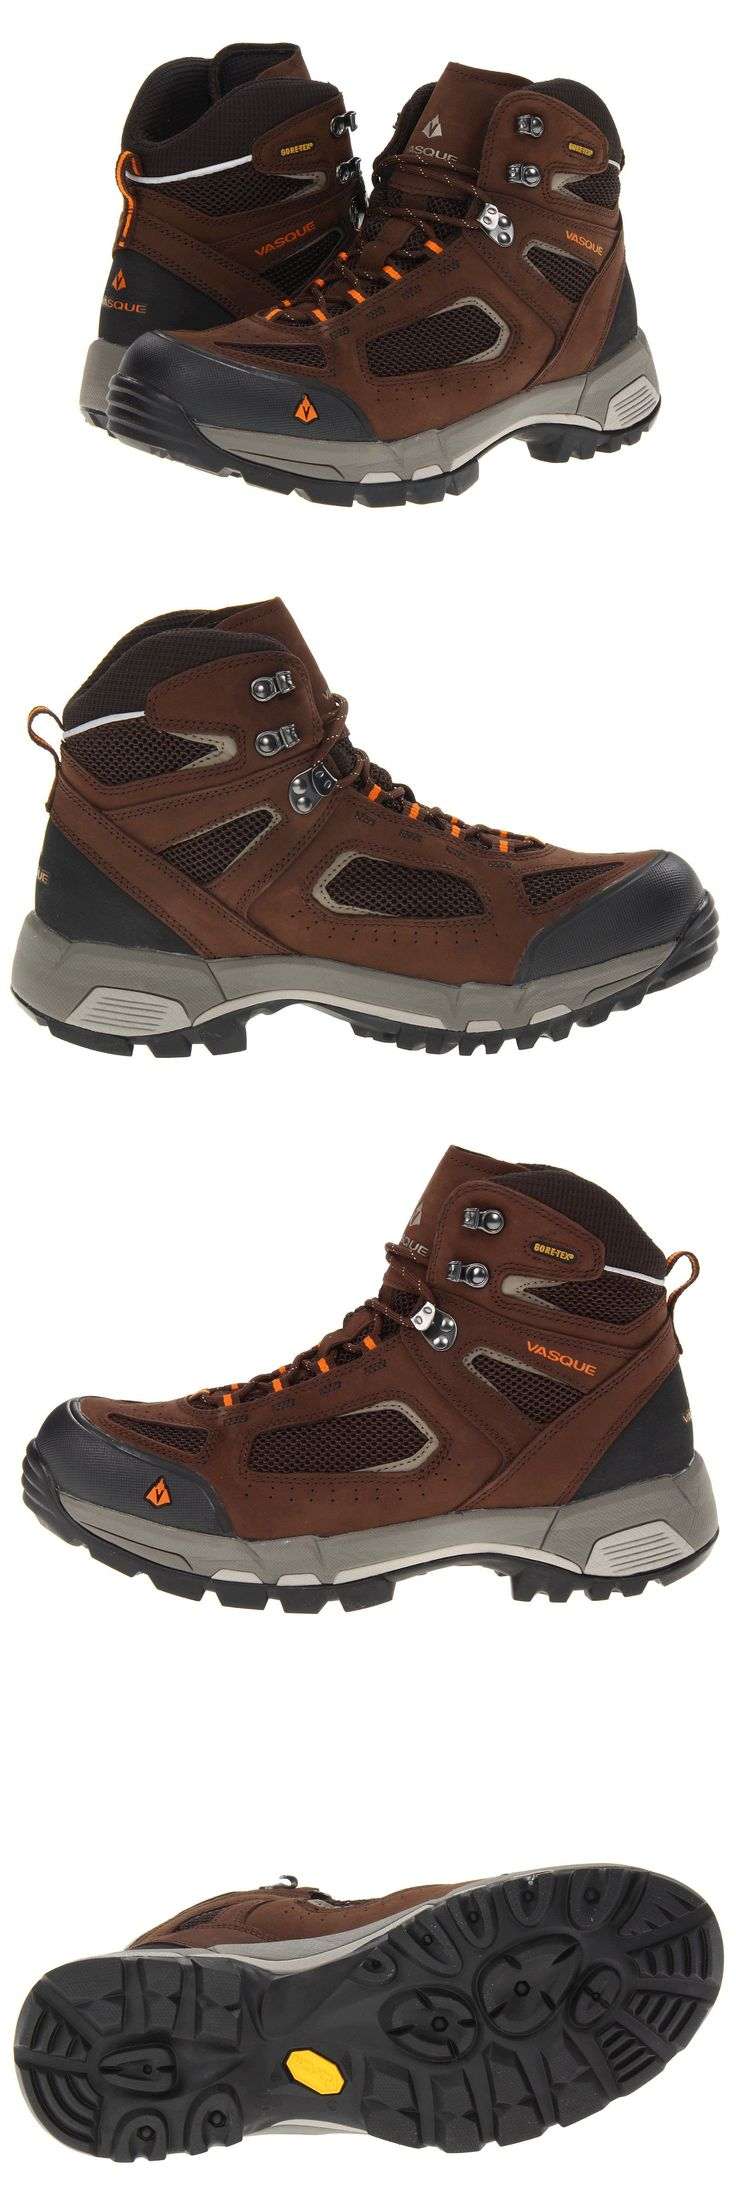 Mens 181392: New Vasque Breeze 2.0 Gtx Wp Hiking Trail Boots Men 9 Slate Brown Russet Orang -> BUY IT NOW ONLY: $89.99 on eBay!